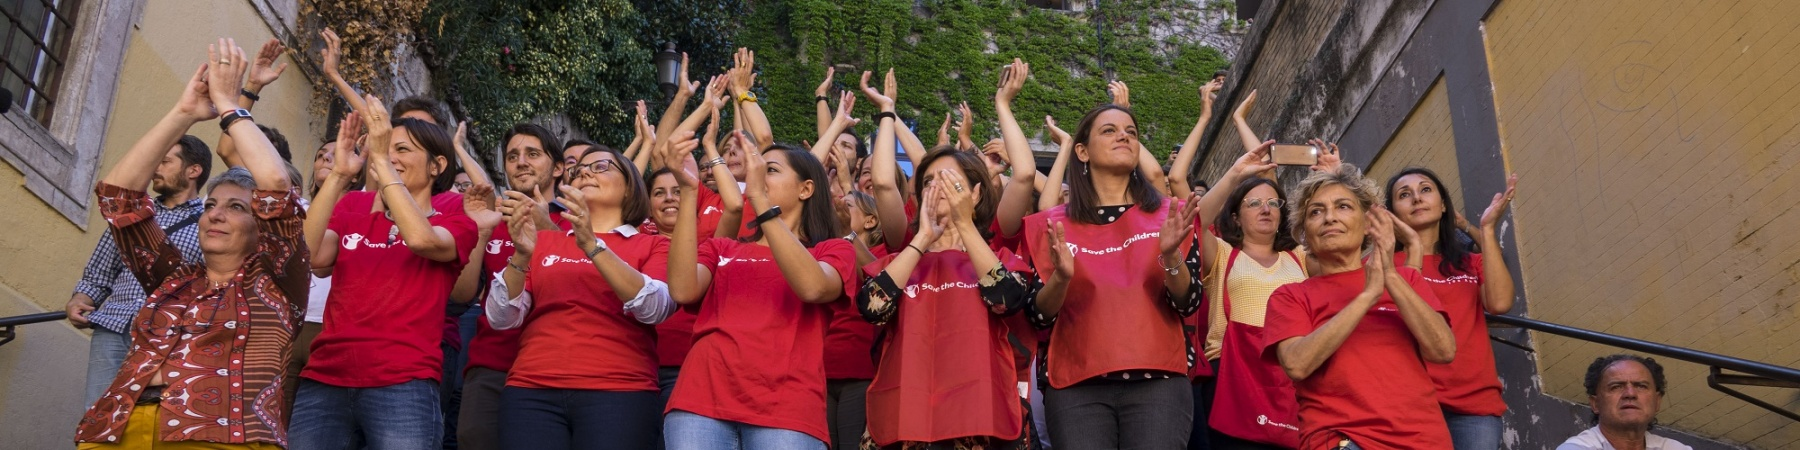 staff di save the children Italia applaude ai ragazzi che manifestano per il Global Strike fo Future, insieme a loro 4 bambini che applaudono sorridenti.